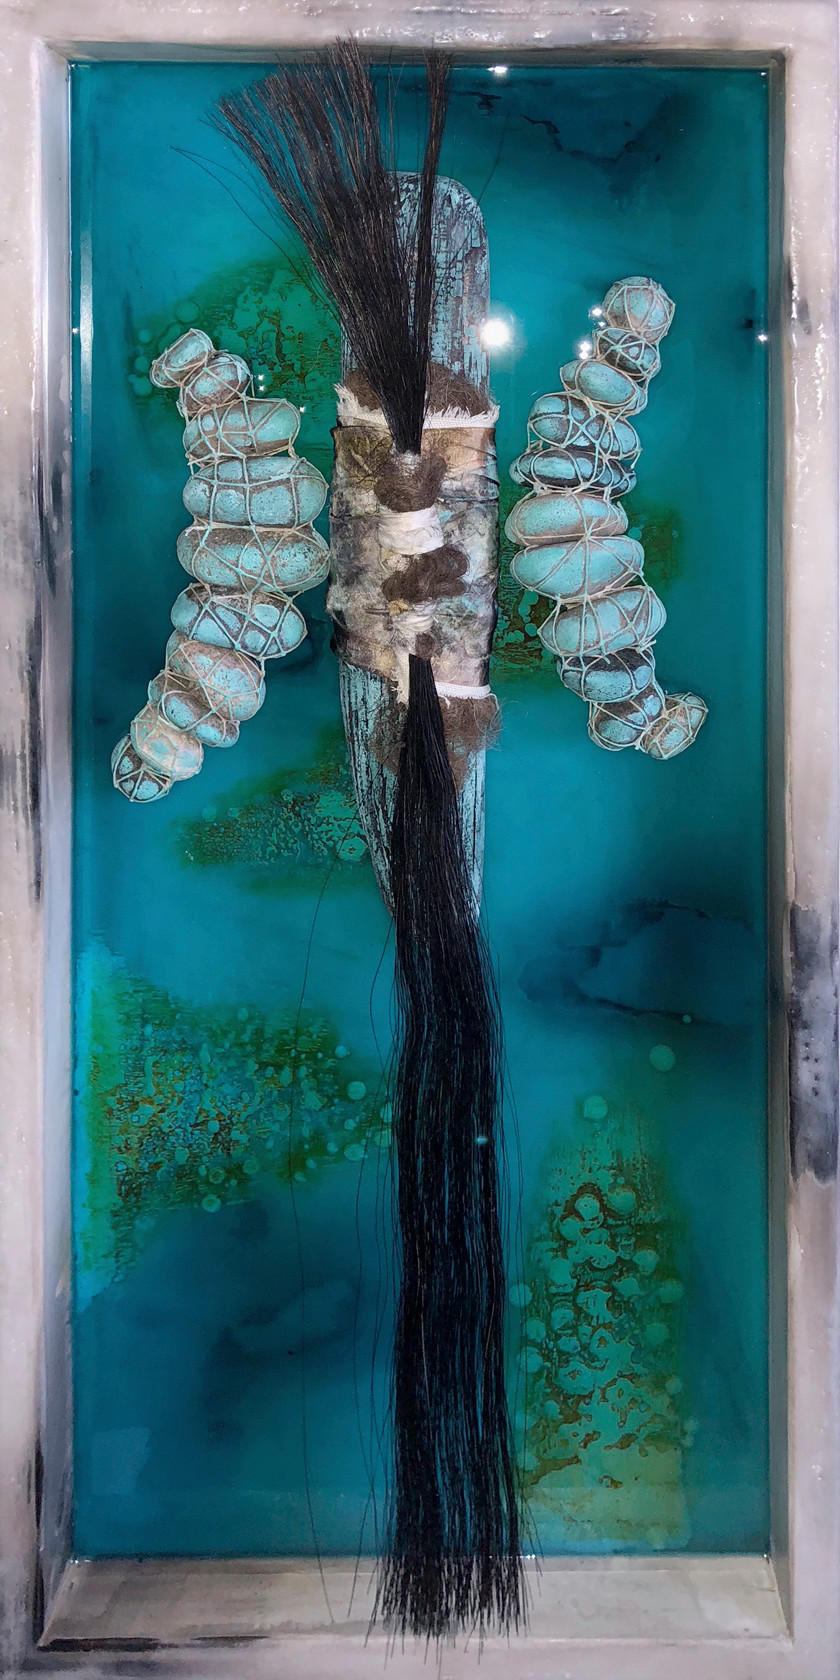 Looking In I Discover Peace - 12 x 24 x 3 1/4 - Encaustic and mixed media on inset wood panel. The finished piece after half a year in the making. Each piece has it's on journey and each one grows at it's own pace.